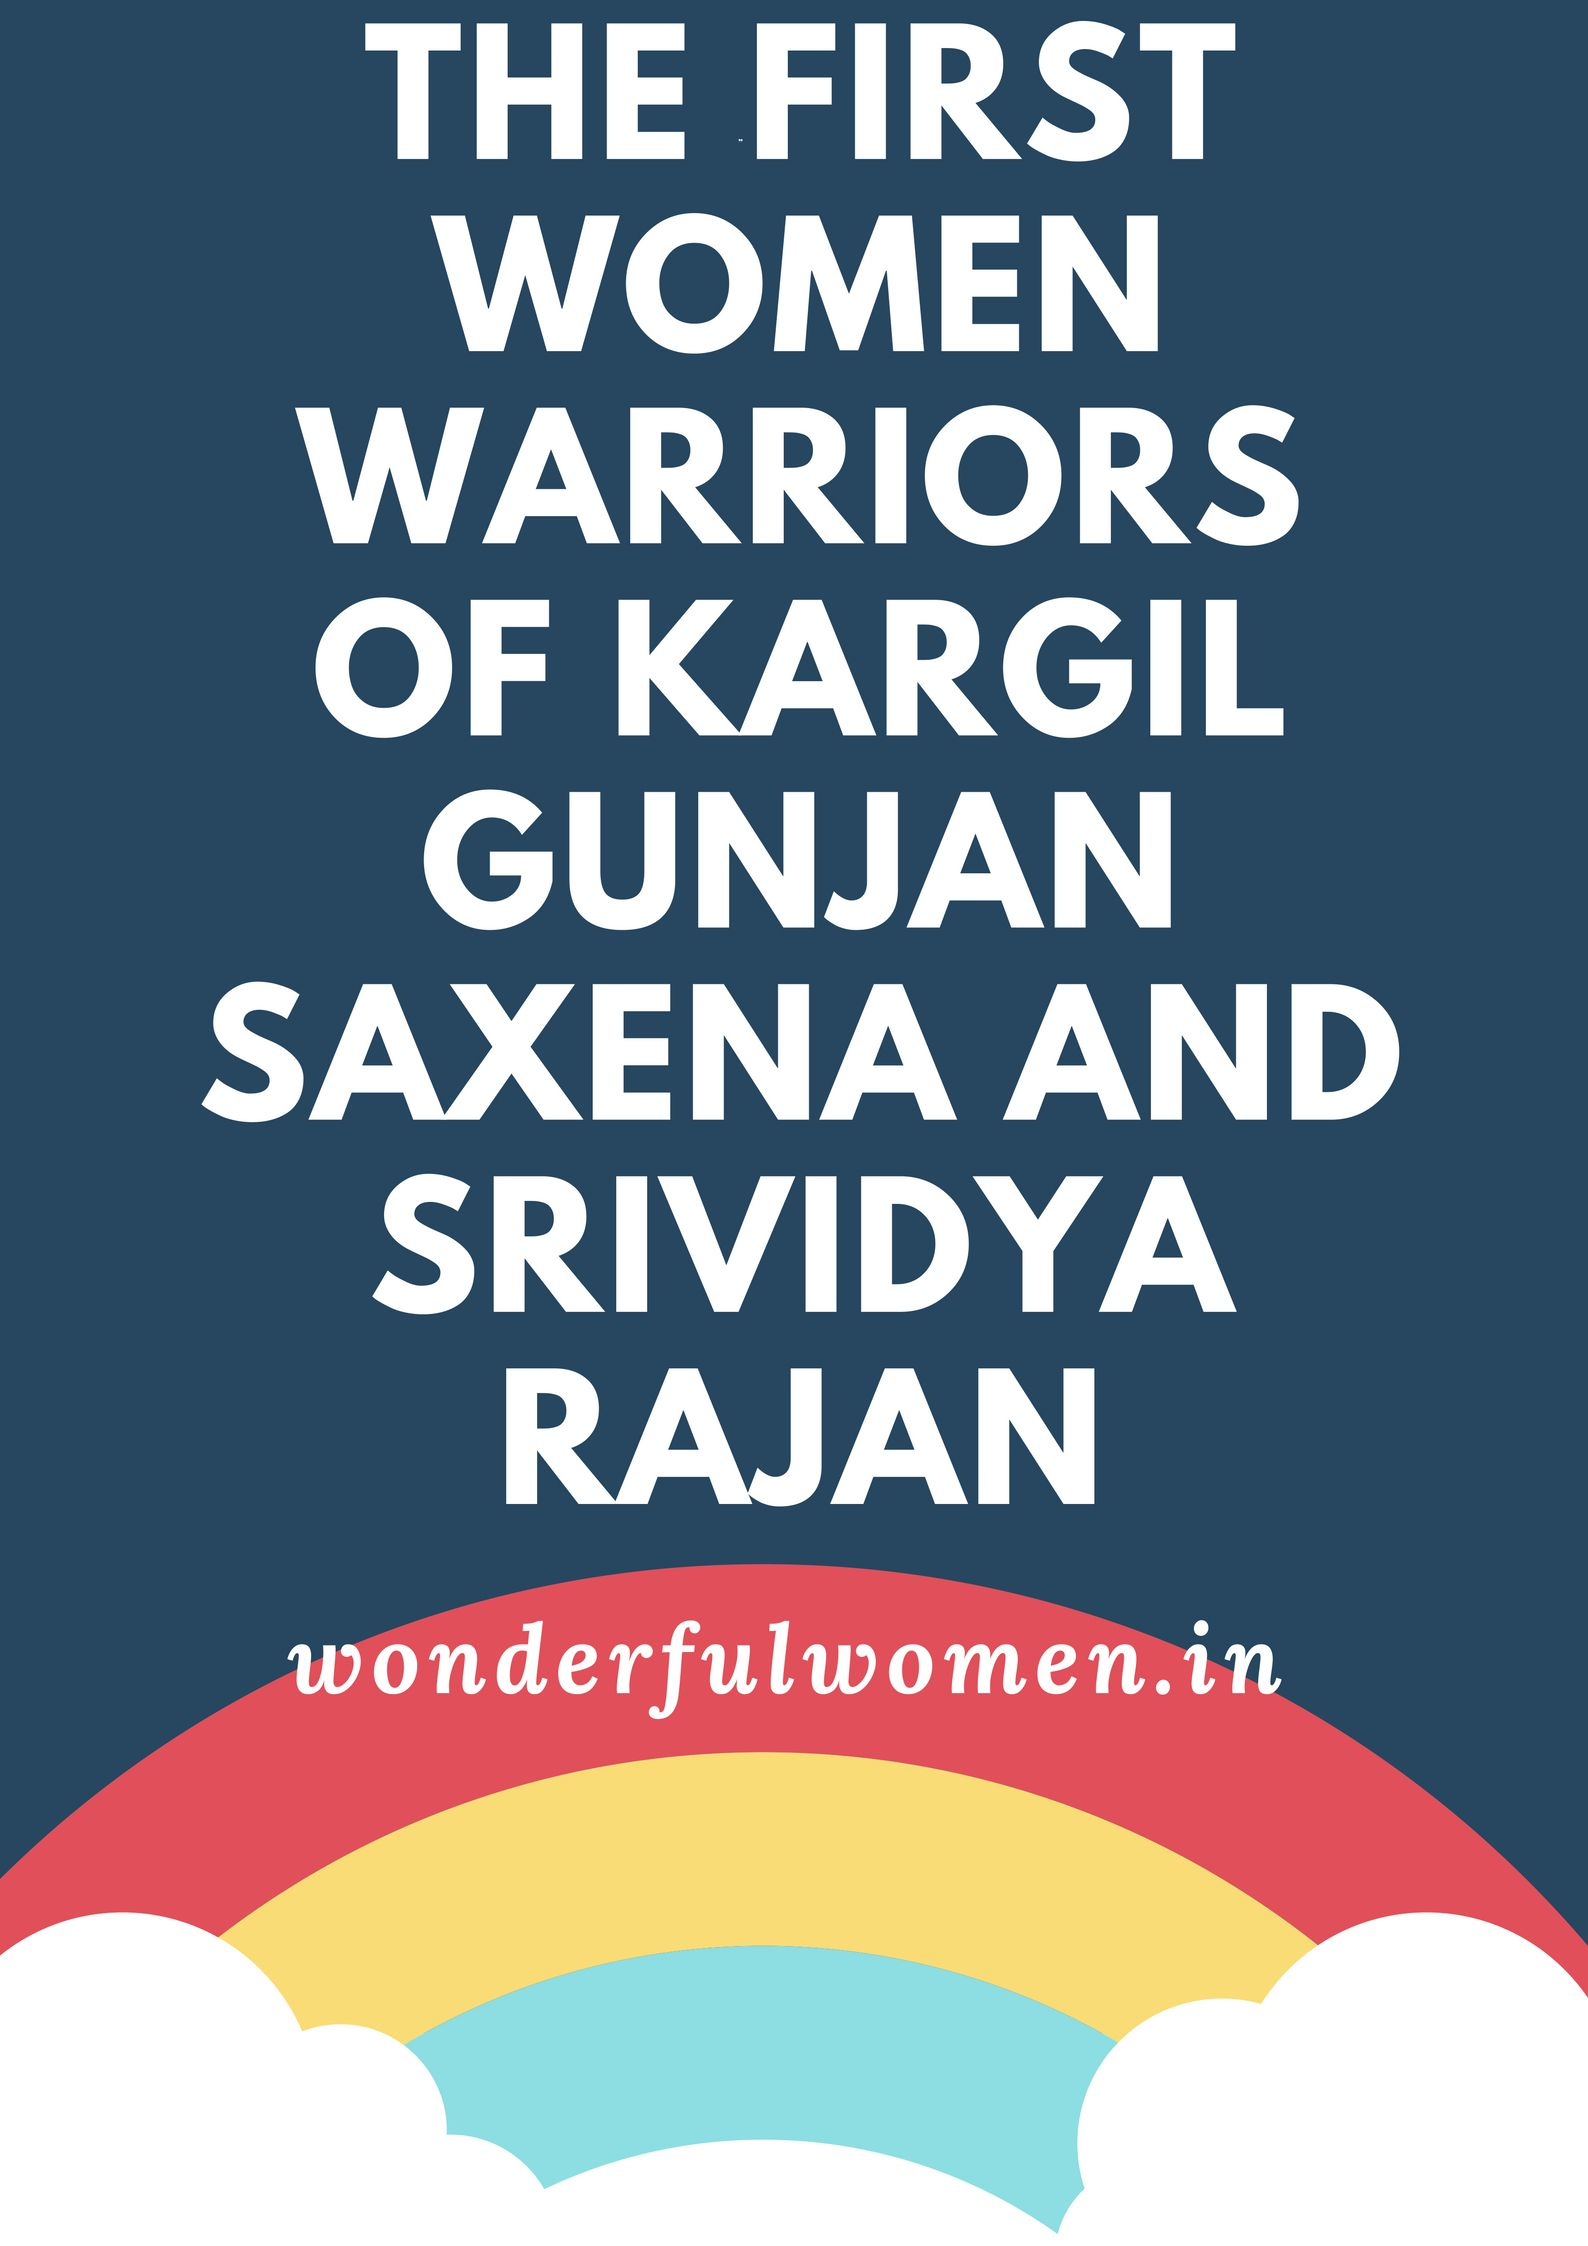 Gunjan Saxena And Srividya Rajan Are Two Names That Have Been Forgotten By Most Of Indians These Women Were In Inspirational People Women Motivation Top Blogs